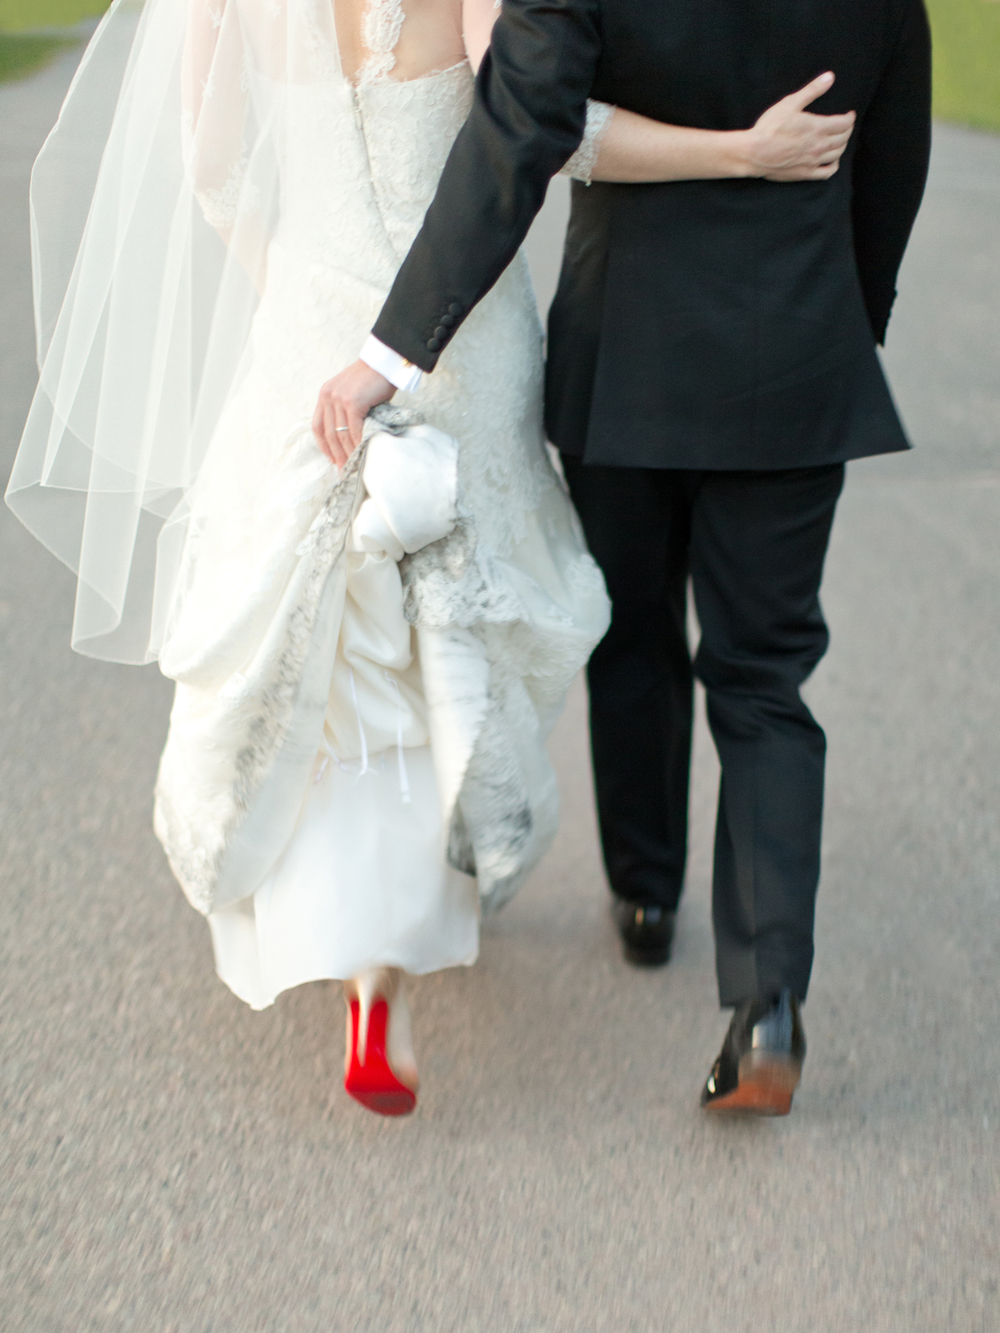 Bride and groom walking with groom holding dress train